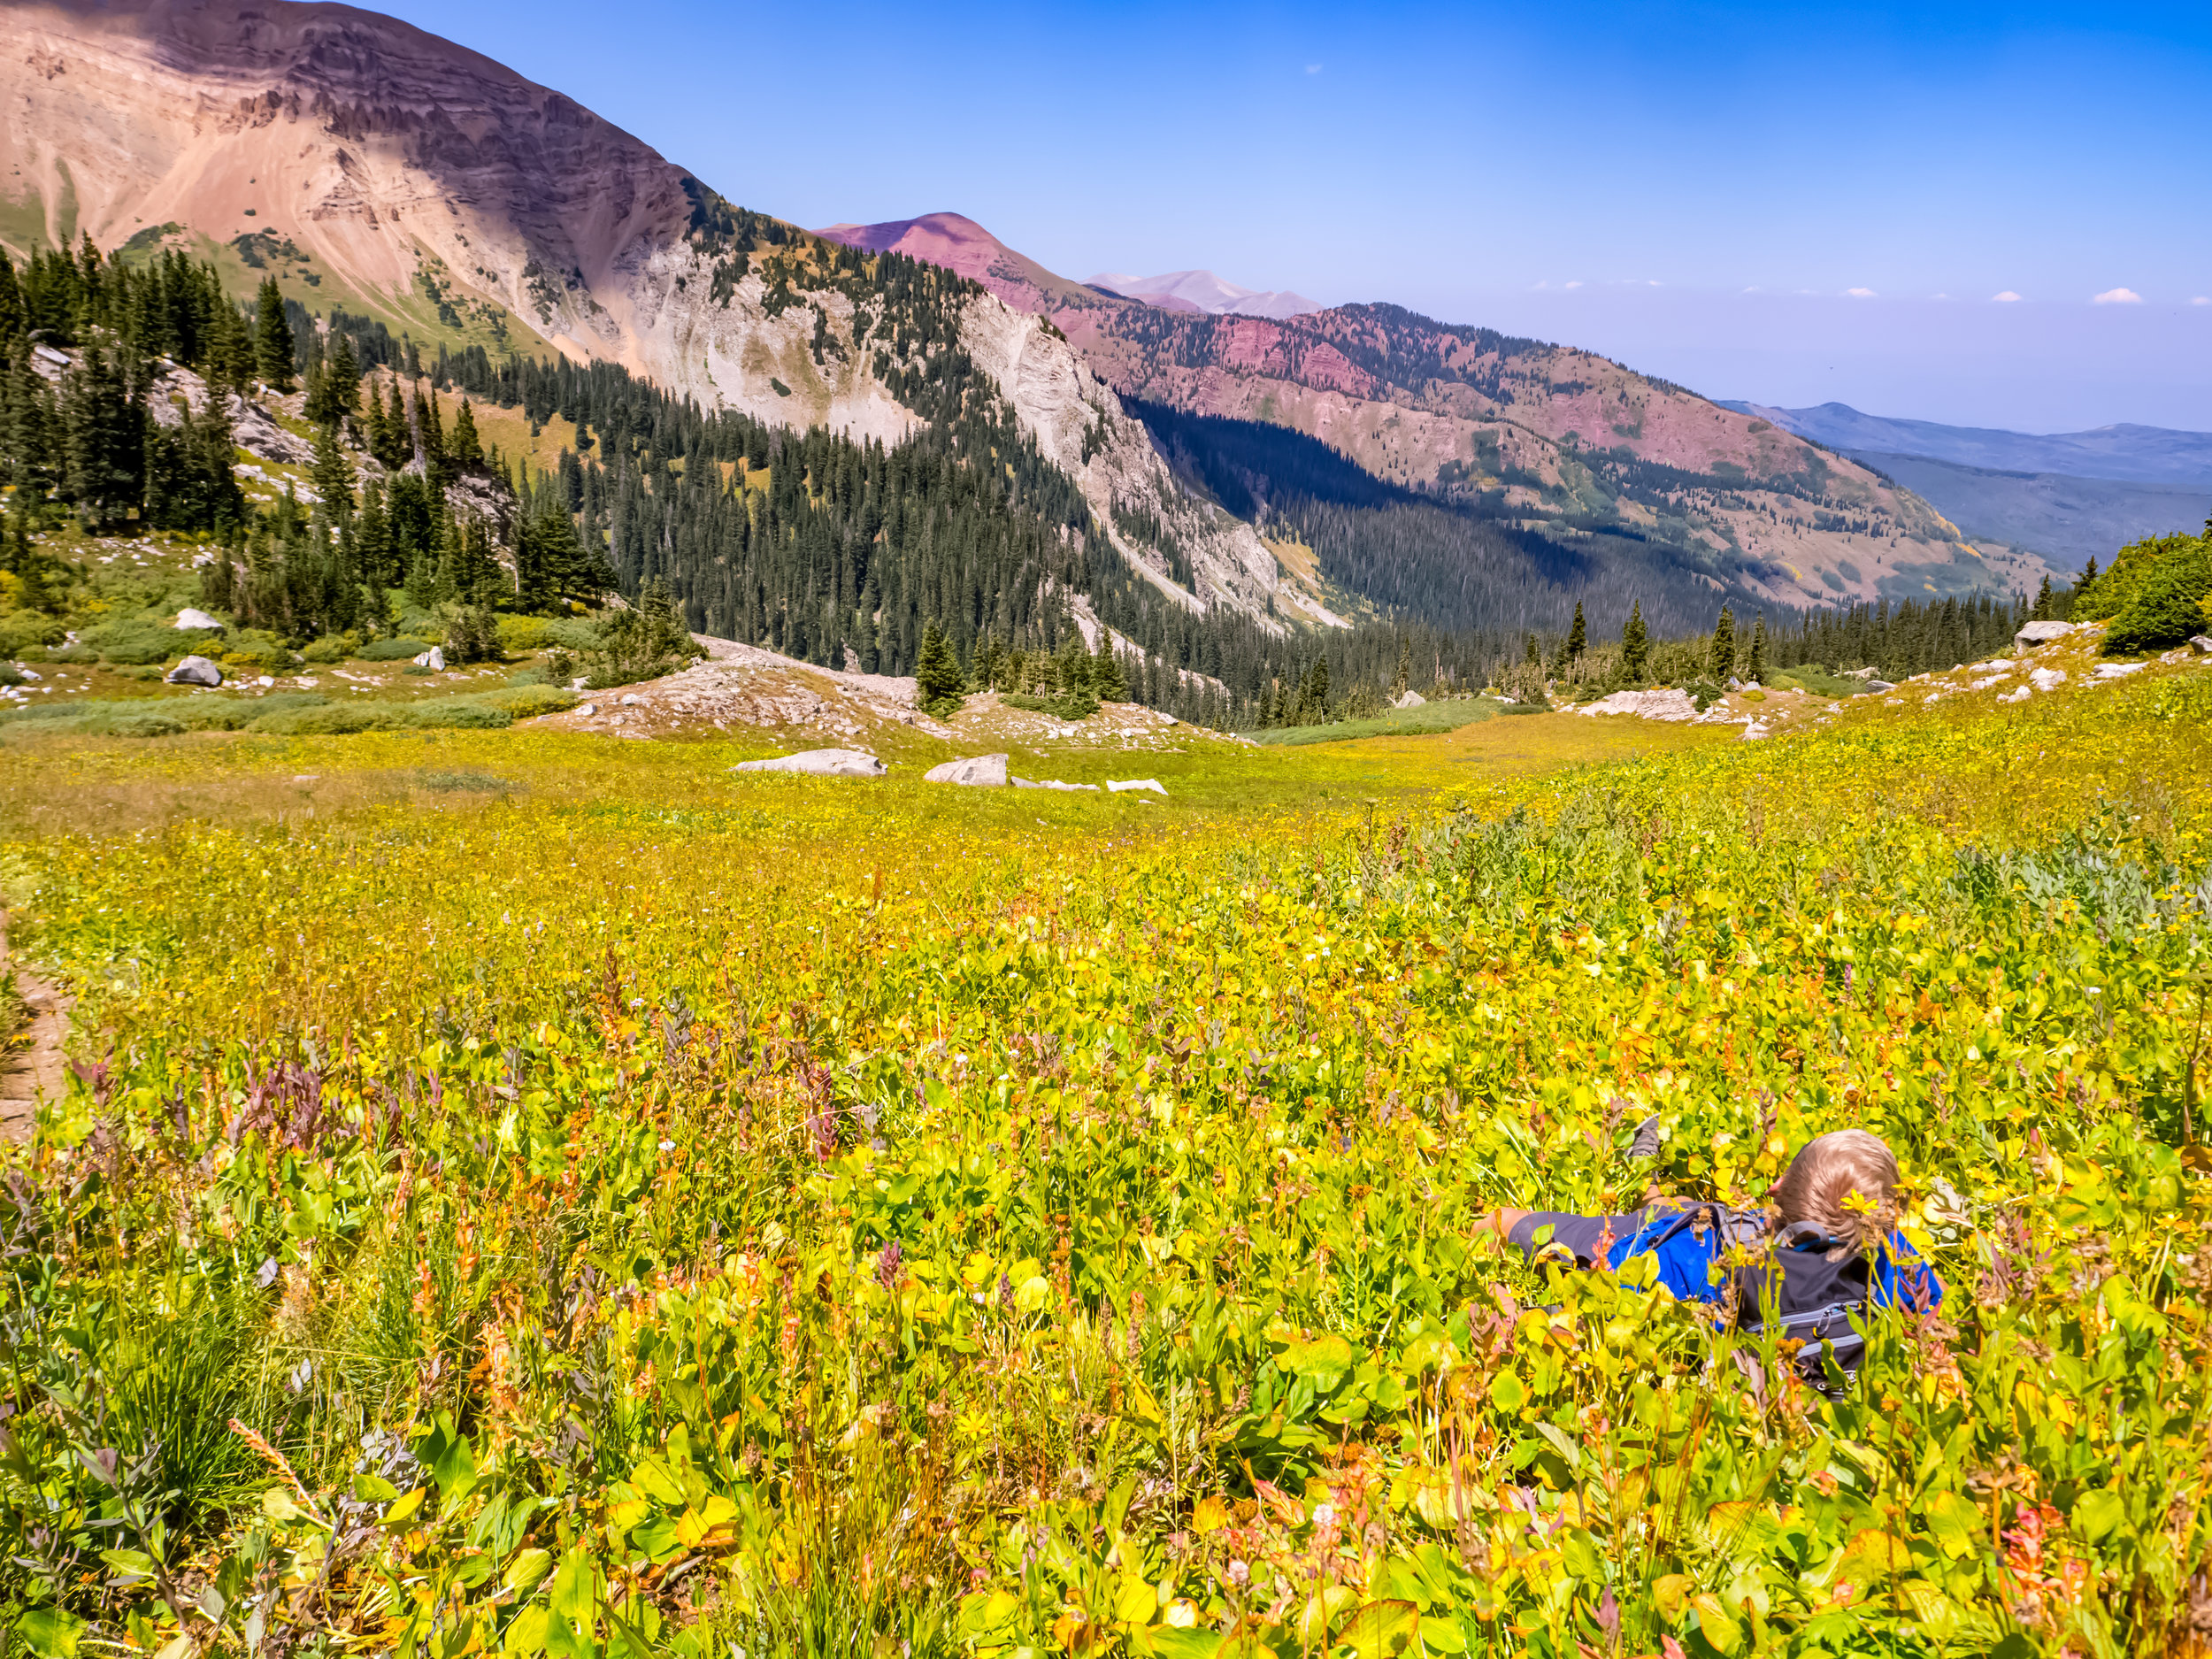 Moving fast, but taking time to smell the flowers on the descent.